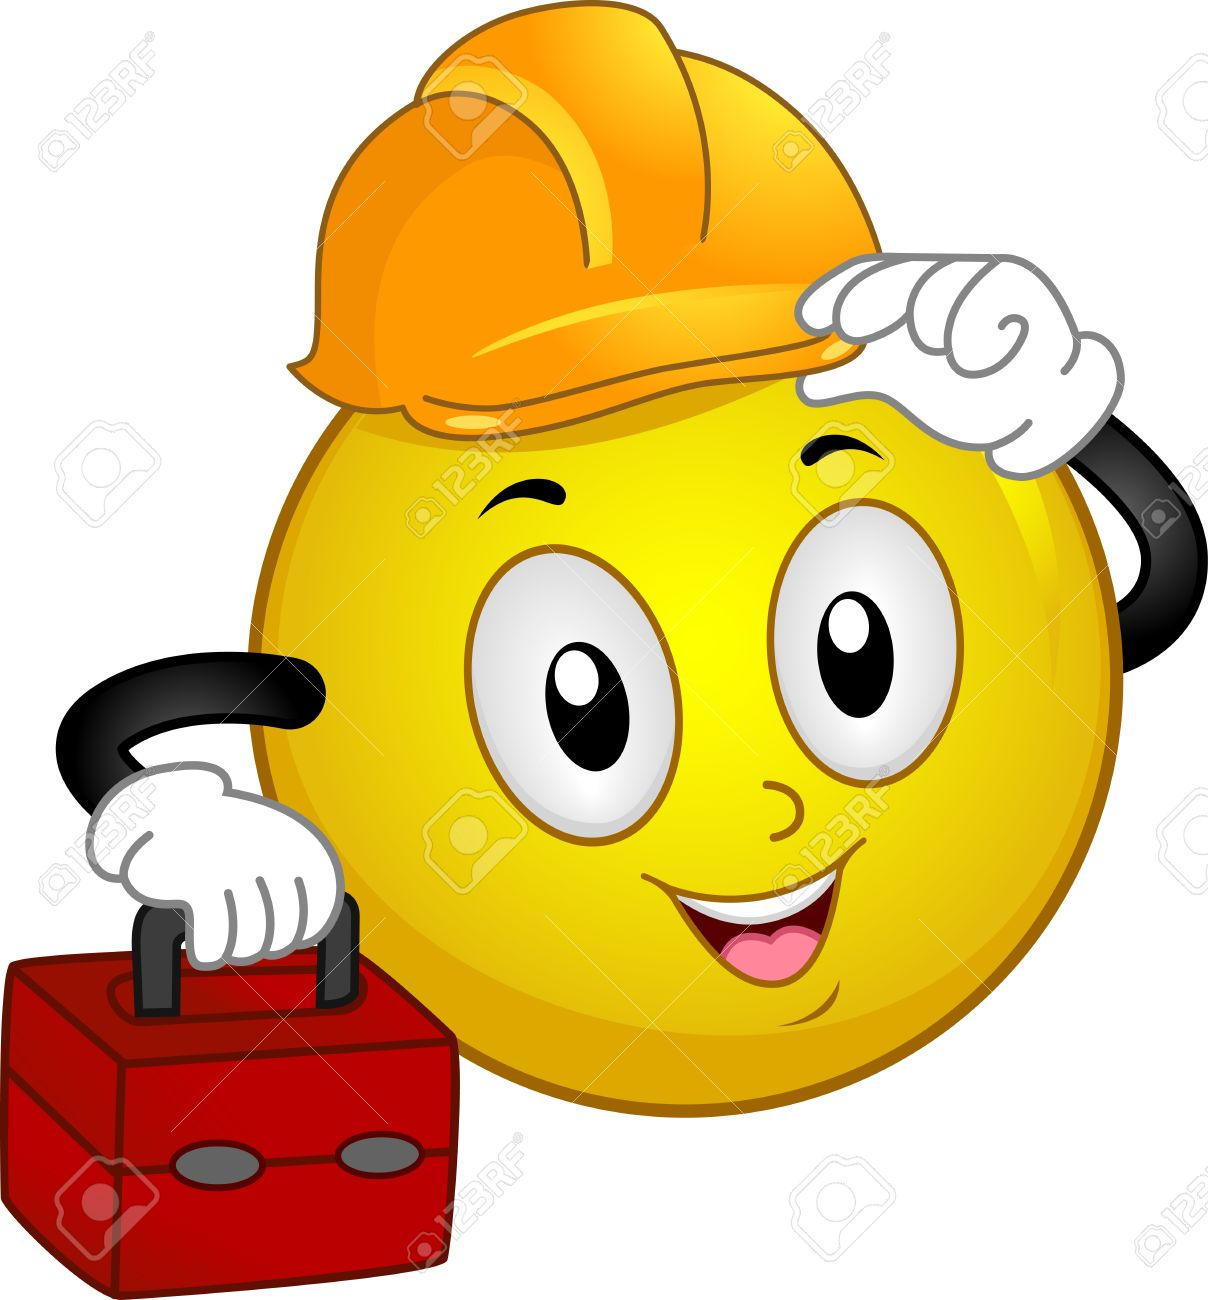 Illustration of a Smiley Wearing a Hard Hat and Carrying a Tool Kit Stock Photo - 15122098